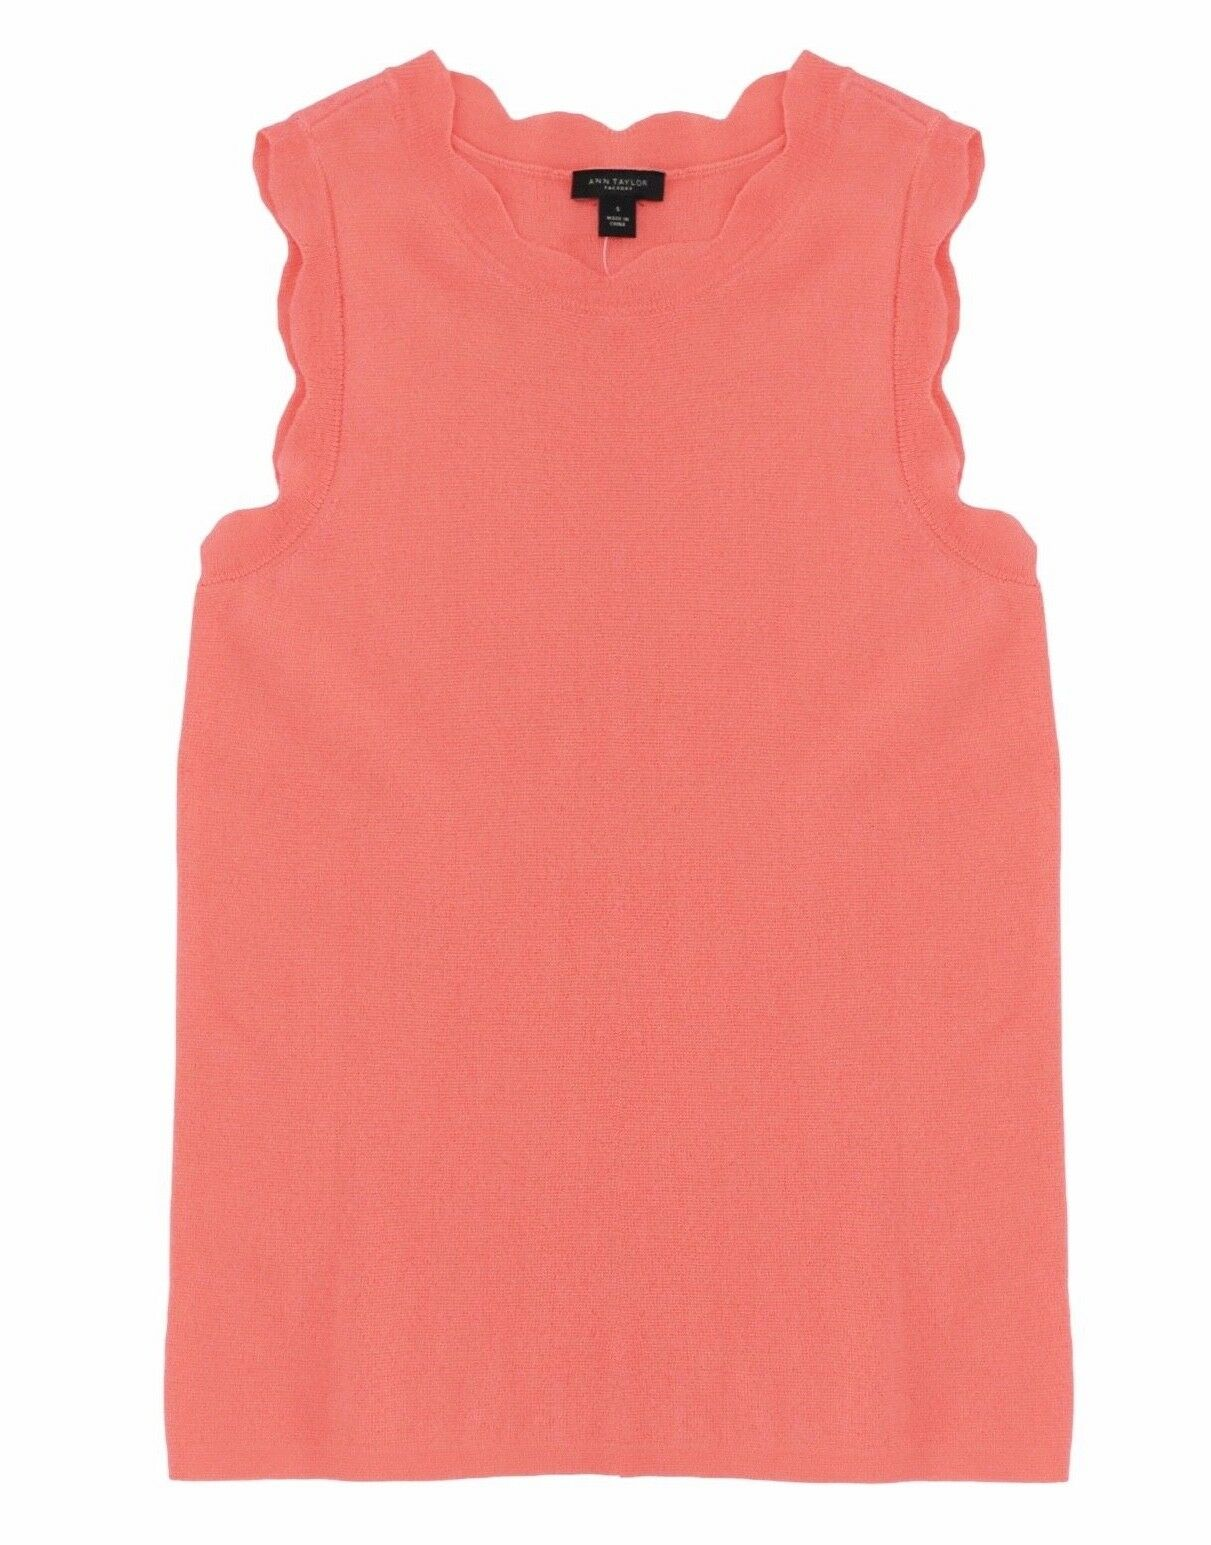 Ann Taylor Factory Women's M NWT Coral Pink Scalloped Sweater Shell Tank